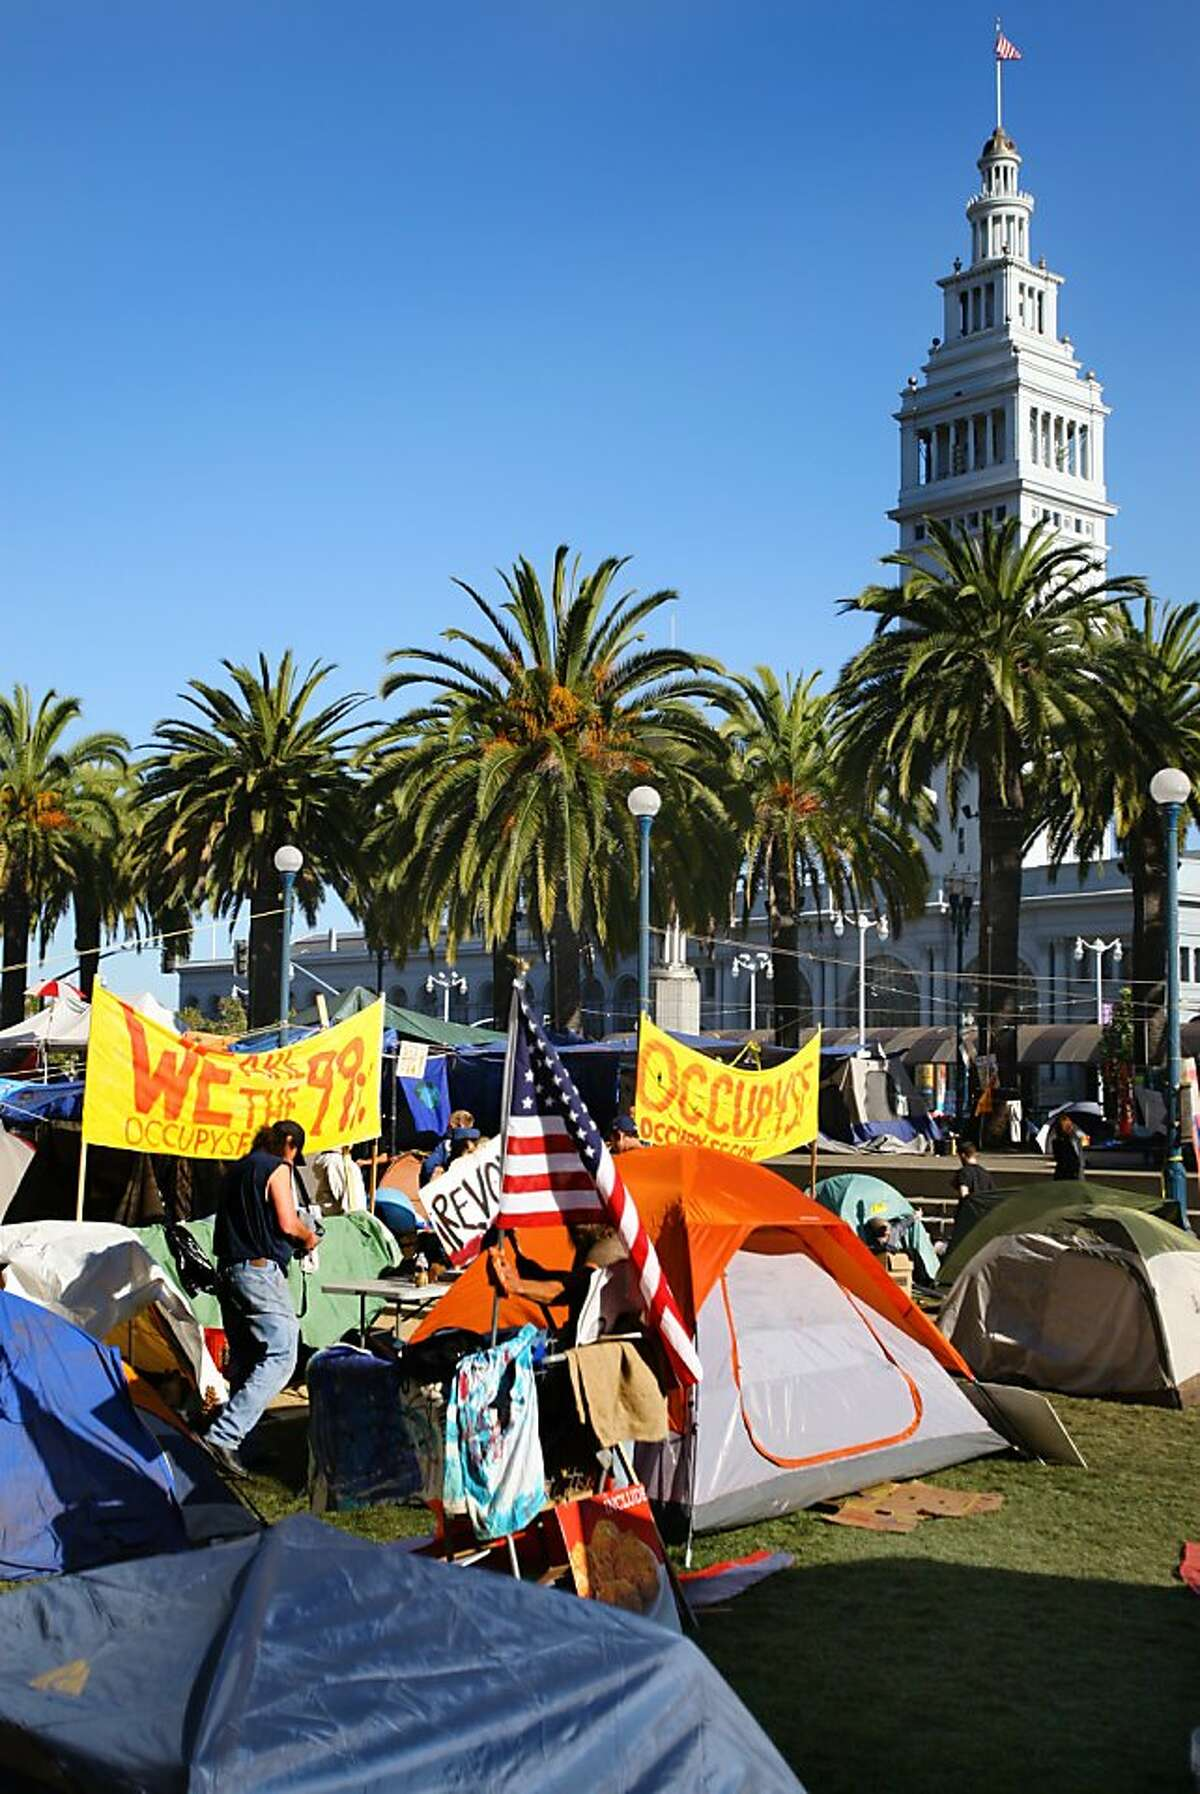 Members of Occupy San Francisco continue their protests in Justin Herman Plaza in San Francisco, Calif., on Sunday, Oct. 30, 2011. Ran on: 10-31-2011 Occupy SF members have taken over the grassy area in Harry Bridges Plaza, just south of Justin Herman Plaza.